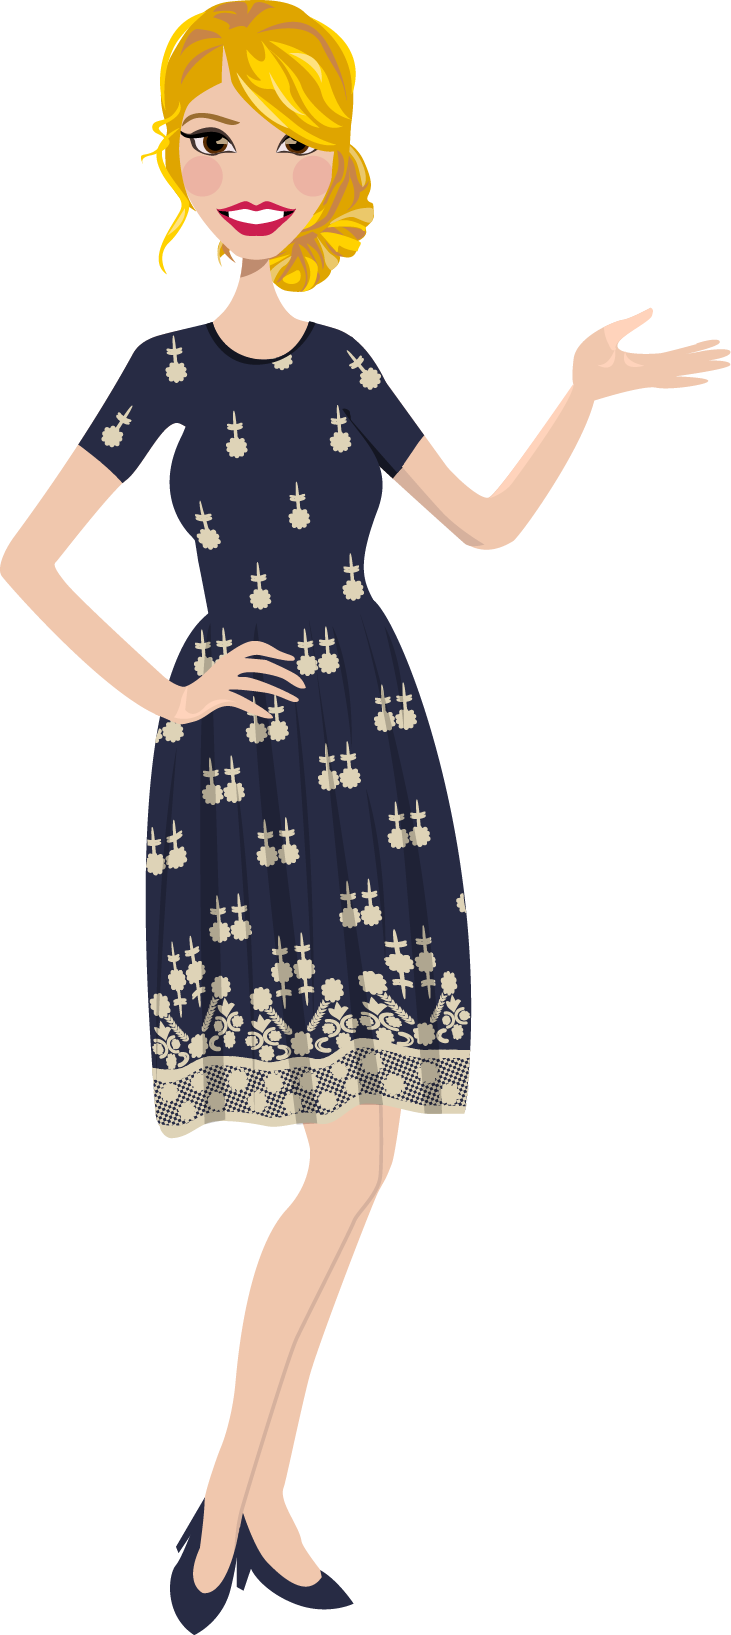 Final Design of Custom Portrait illustration - Here is the final design that Kelly approved. It is a beautiful vector illustration of her as a Business Woman.